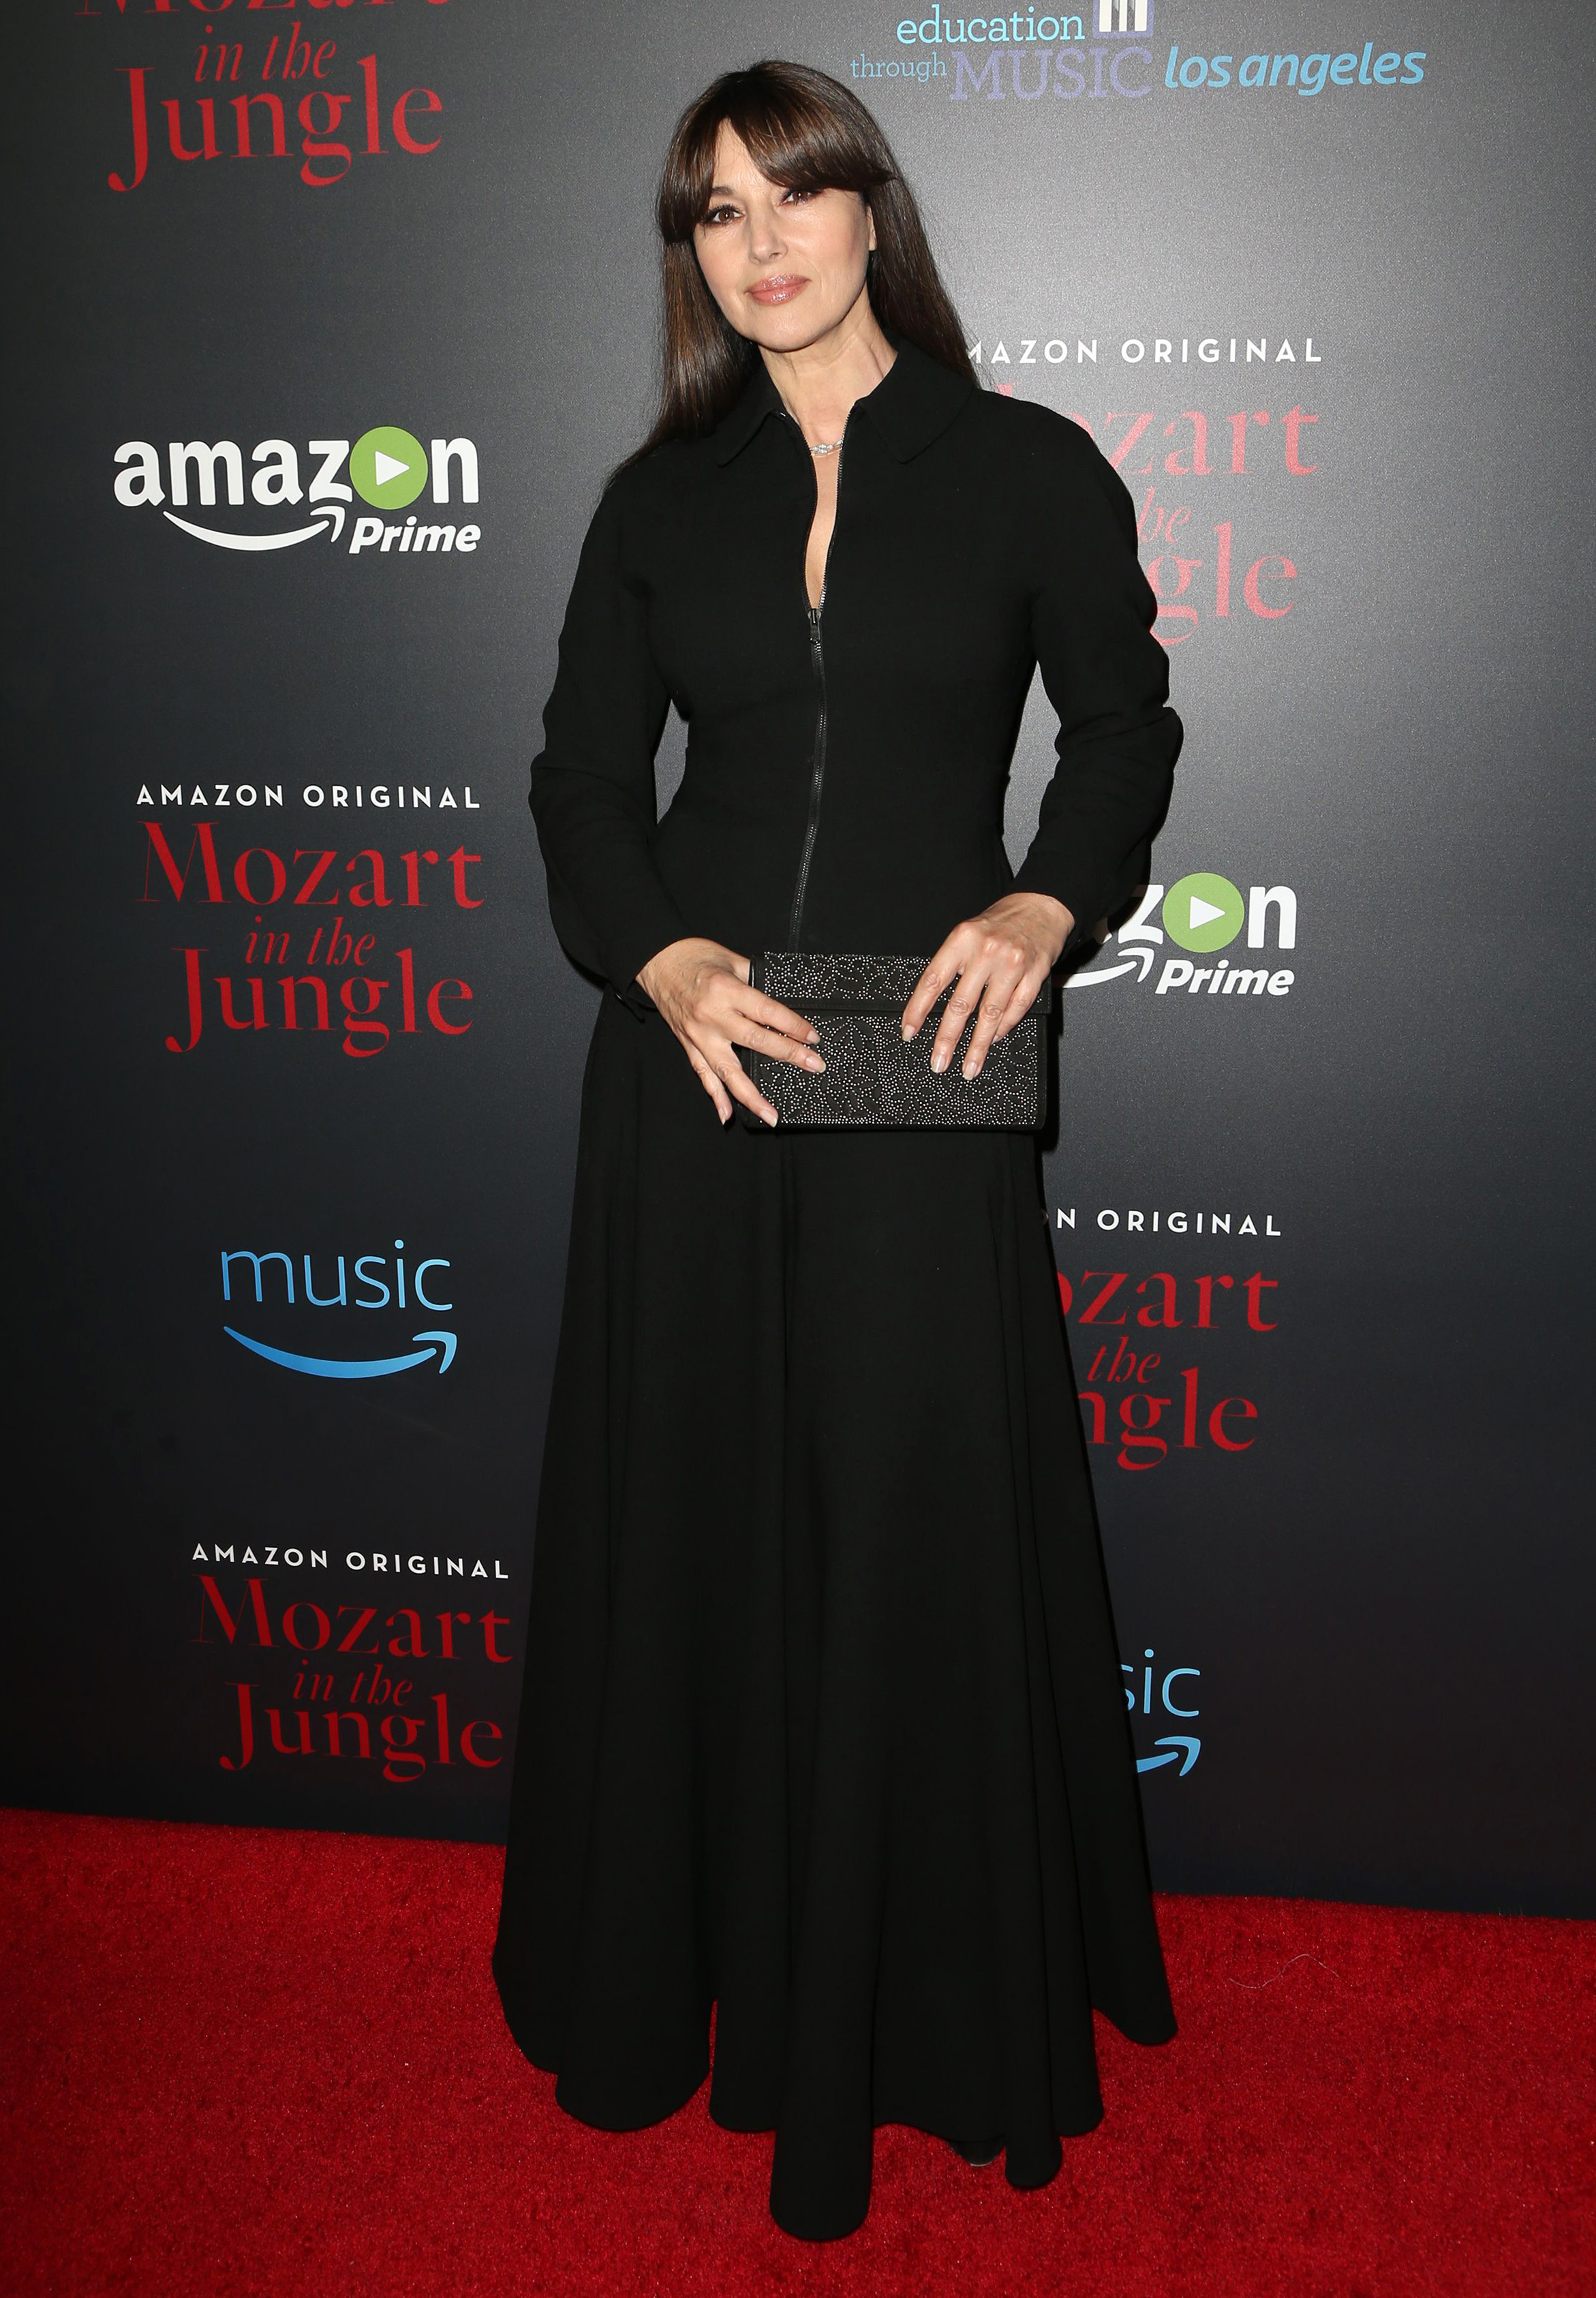 Monica Belluci at the 'Mozart in the Jungle' Premier. Photo by MediaPunch/REX/Shutterstock (7533045ae) Monica Bellucci 'Mozart In The Jungle' TV series, Los Angeles, USA - 01 Dec 2016